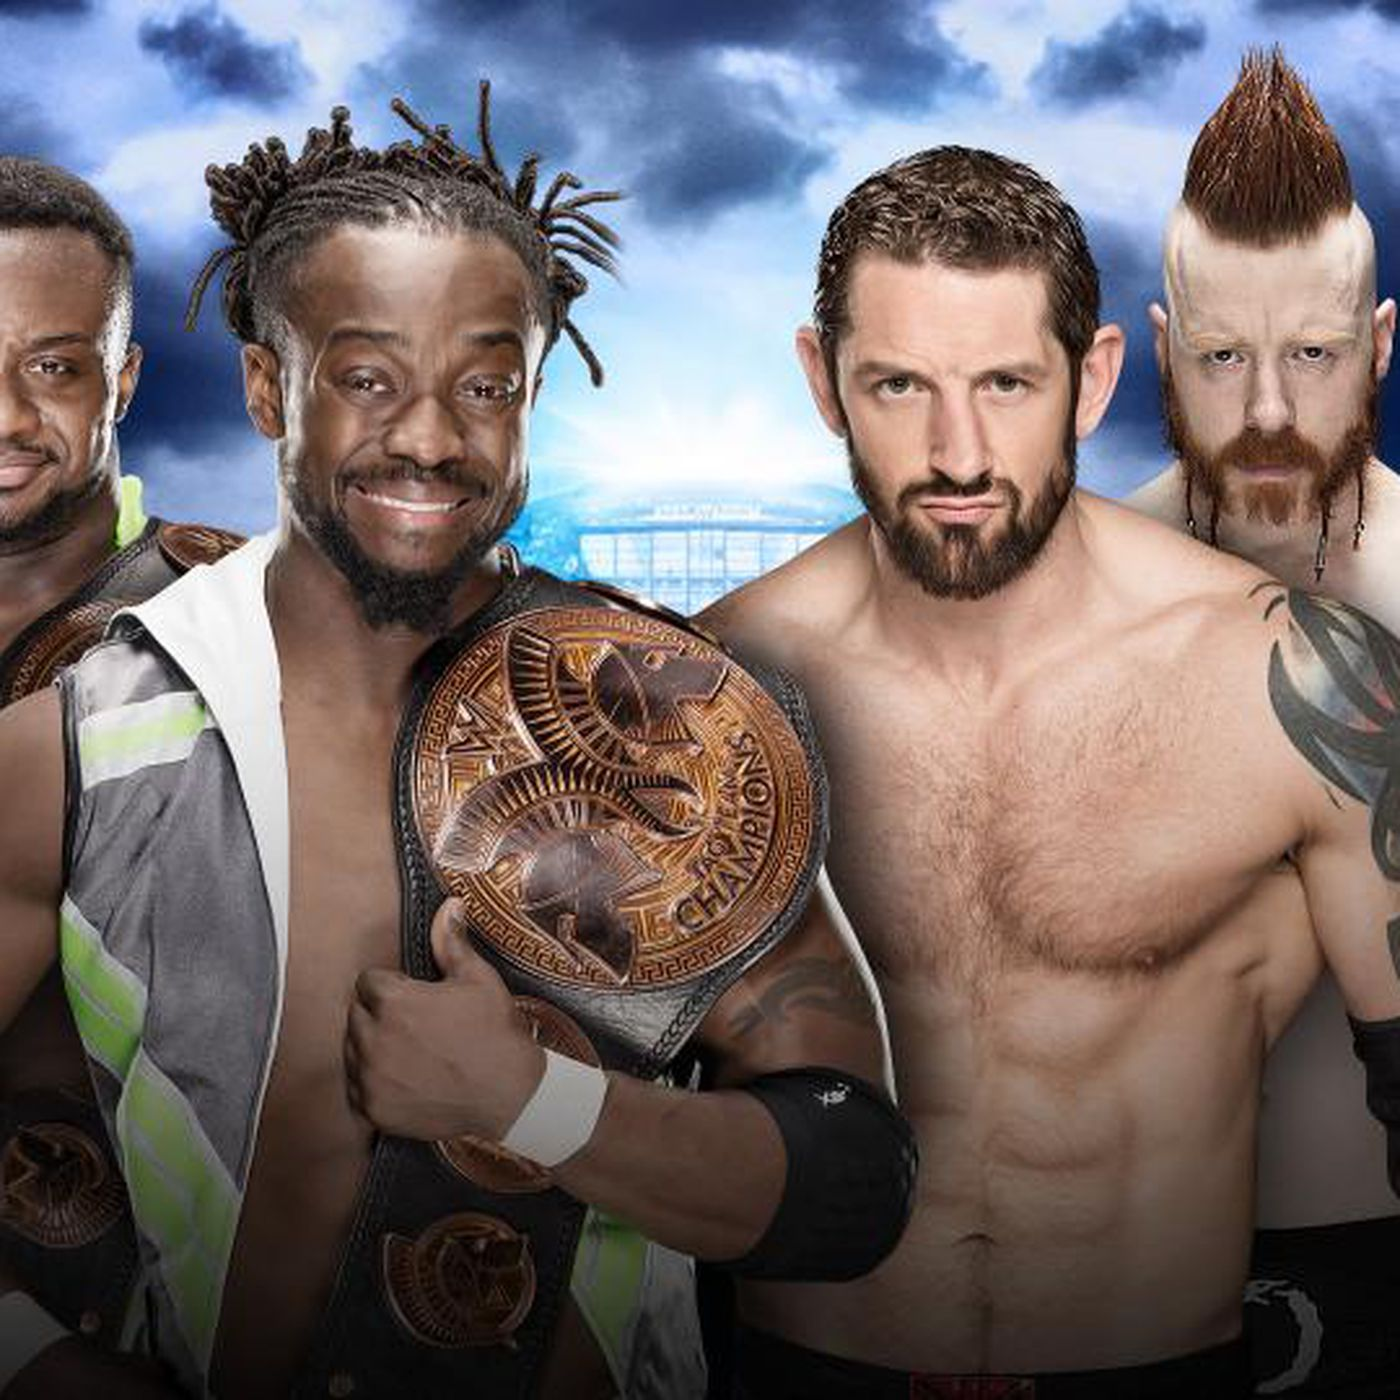 Wwe Wrestlemania 32 Full Match Preview New Day Vs League Of Nation Cageside Seats